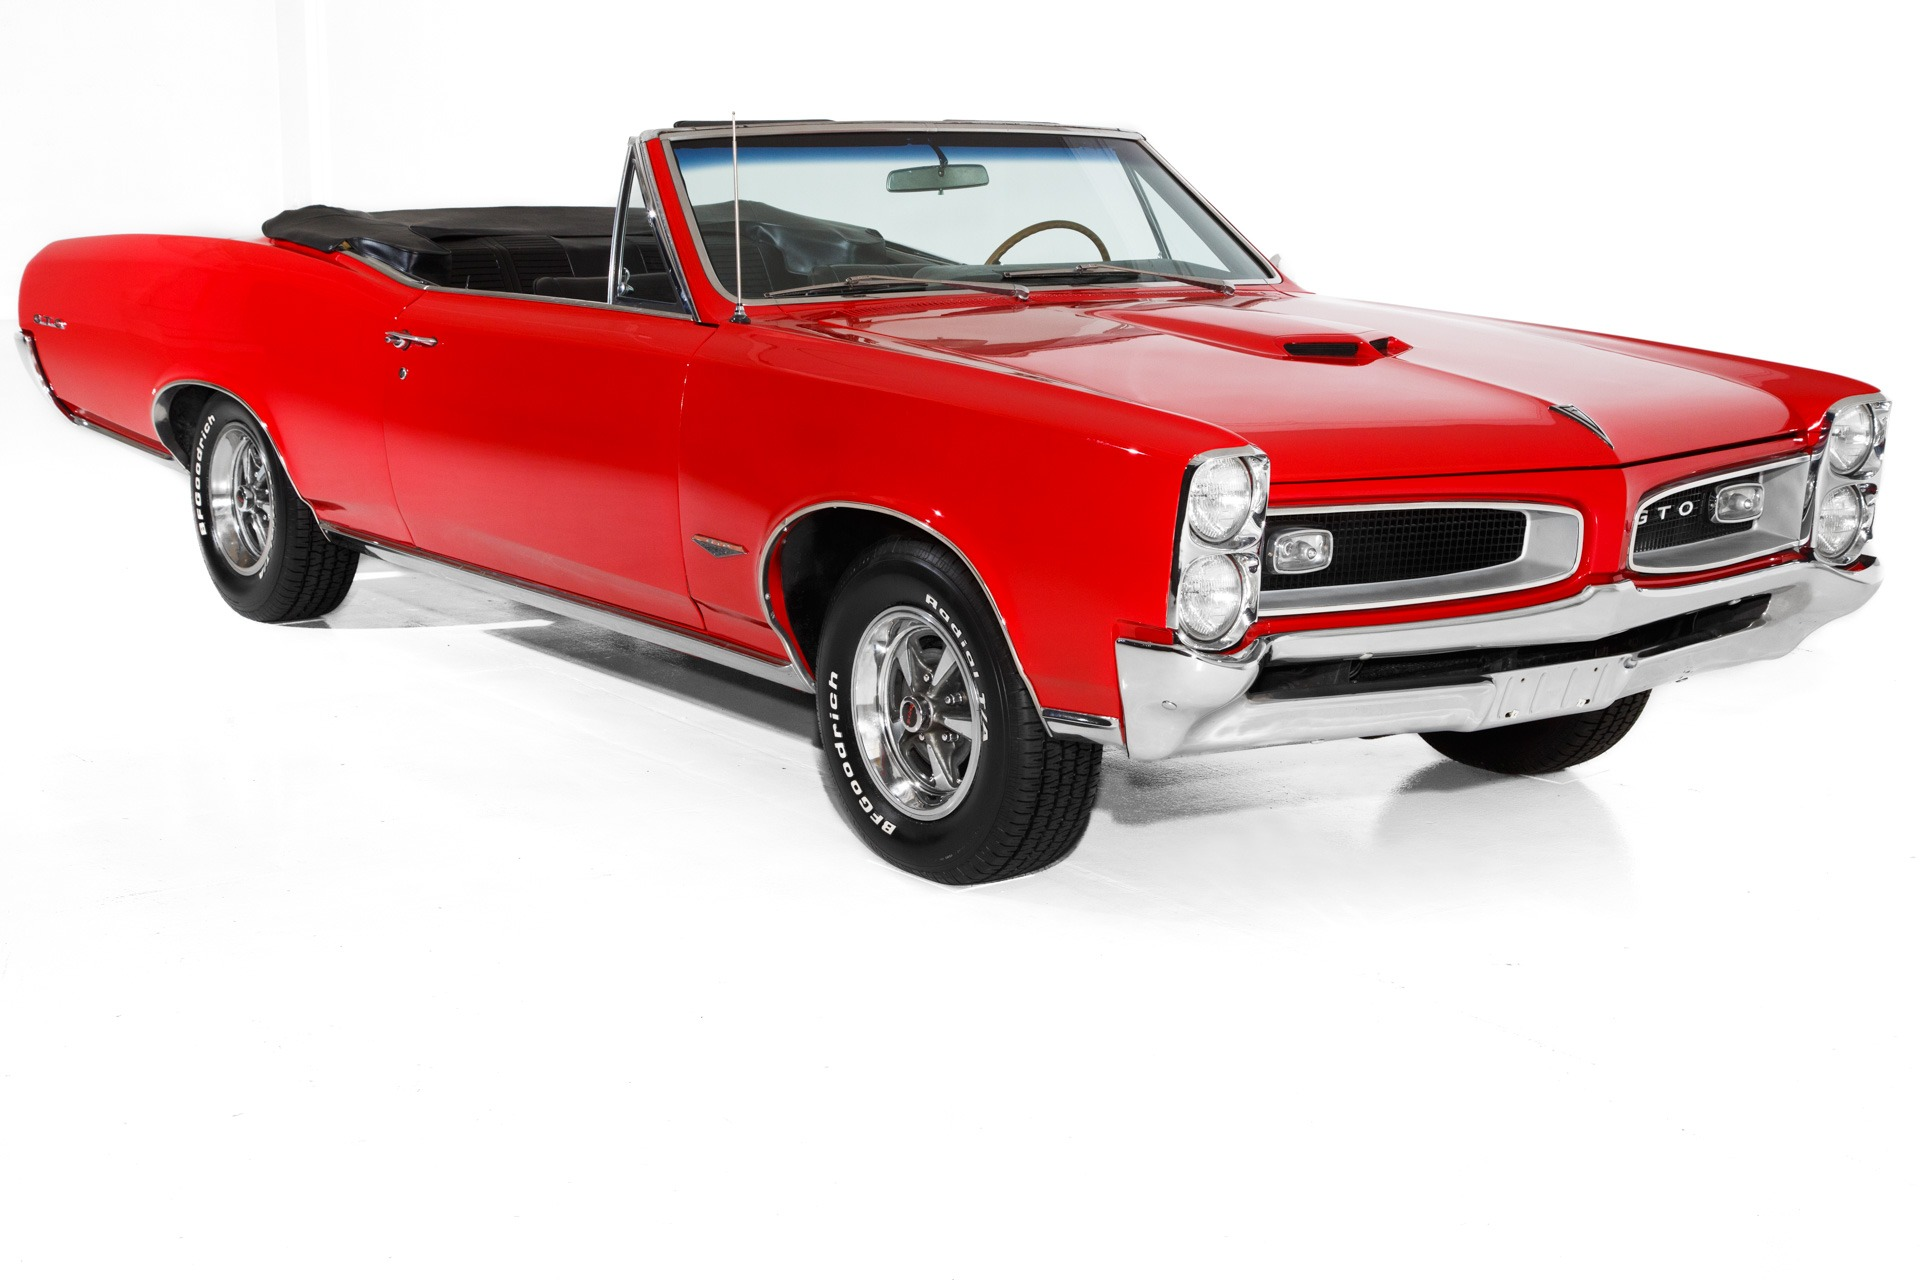 1966 Pontiac GTO Convertible 389 PS, PB, PHS